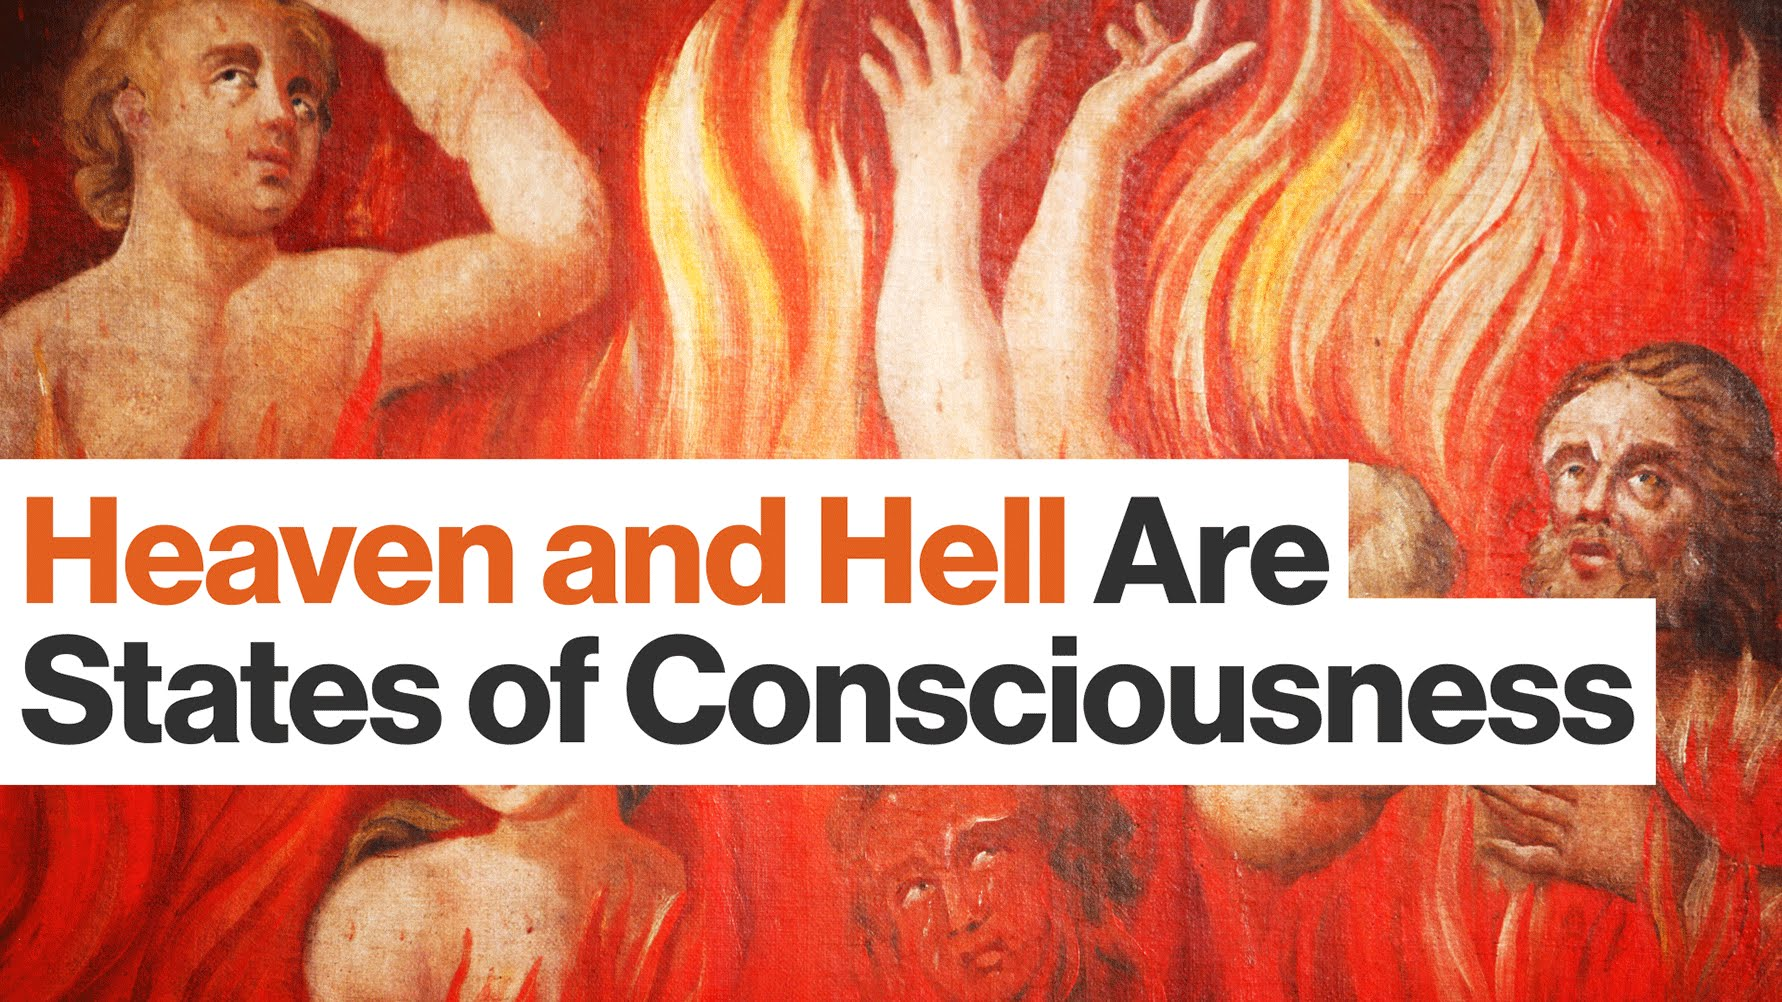 Heaven and Hell are Misunderstood Social Constructs